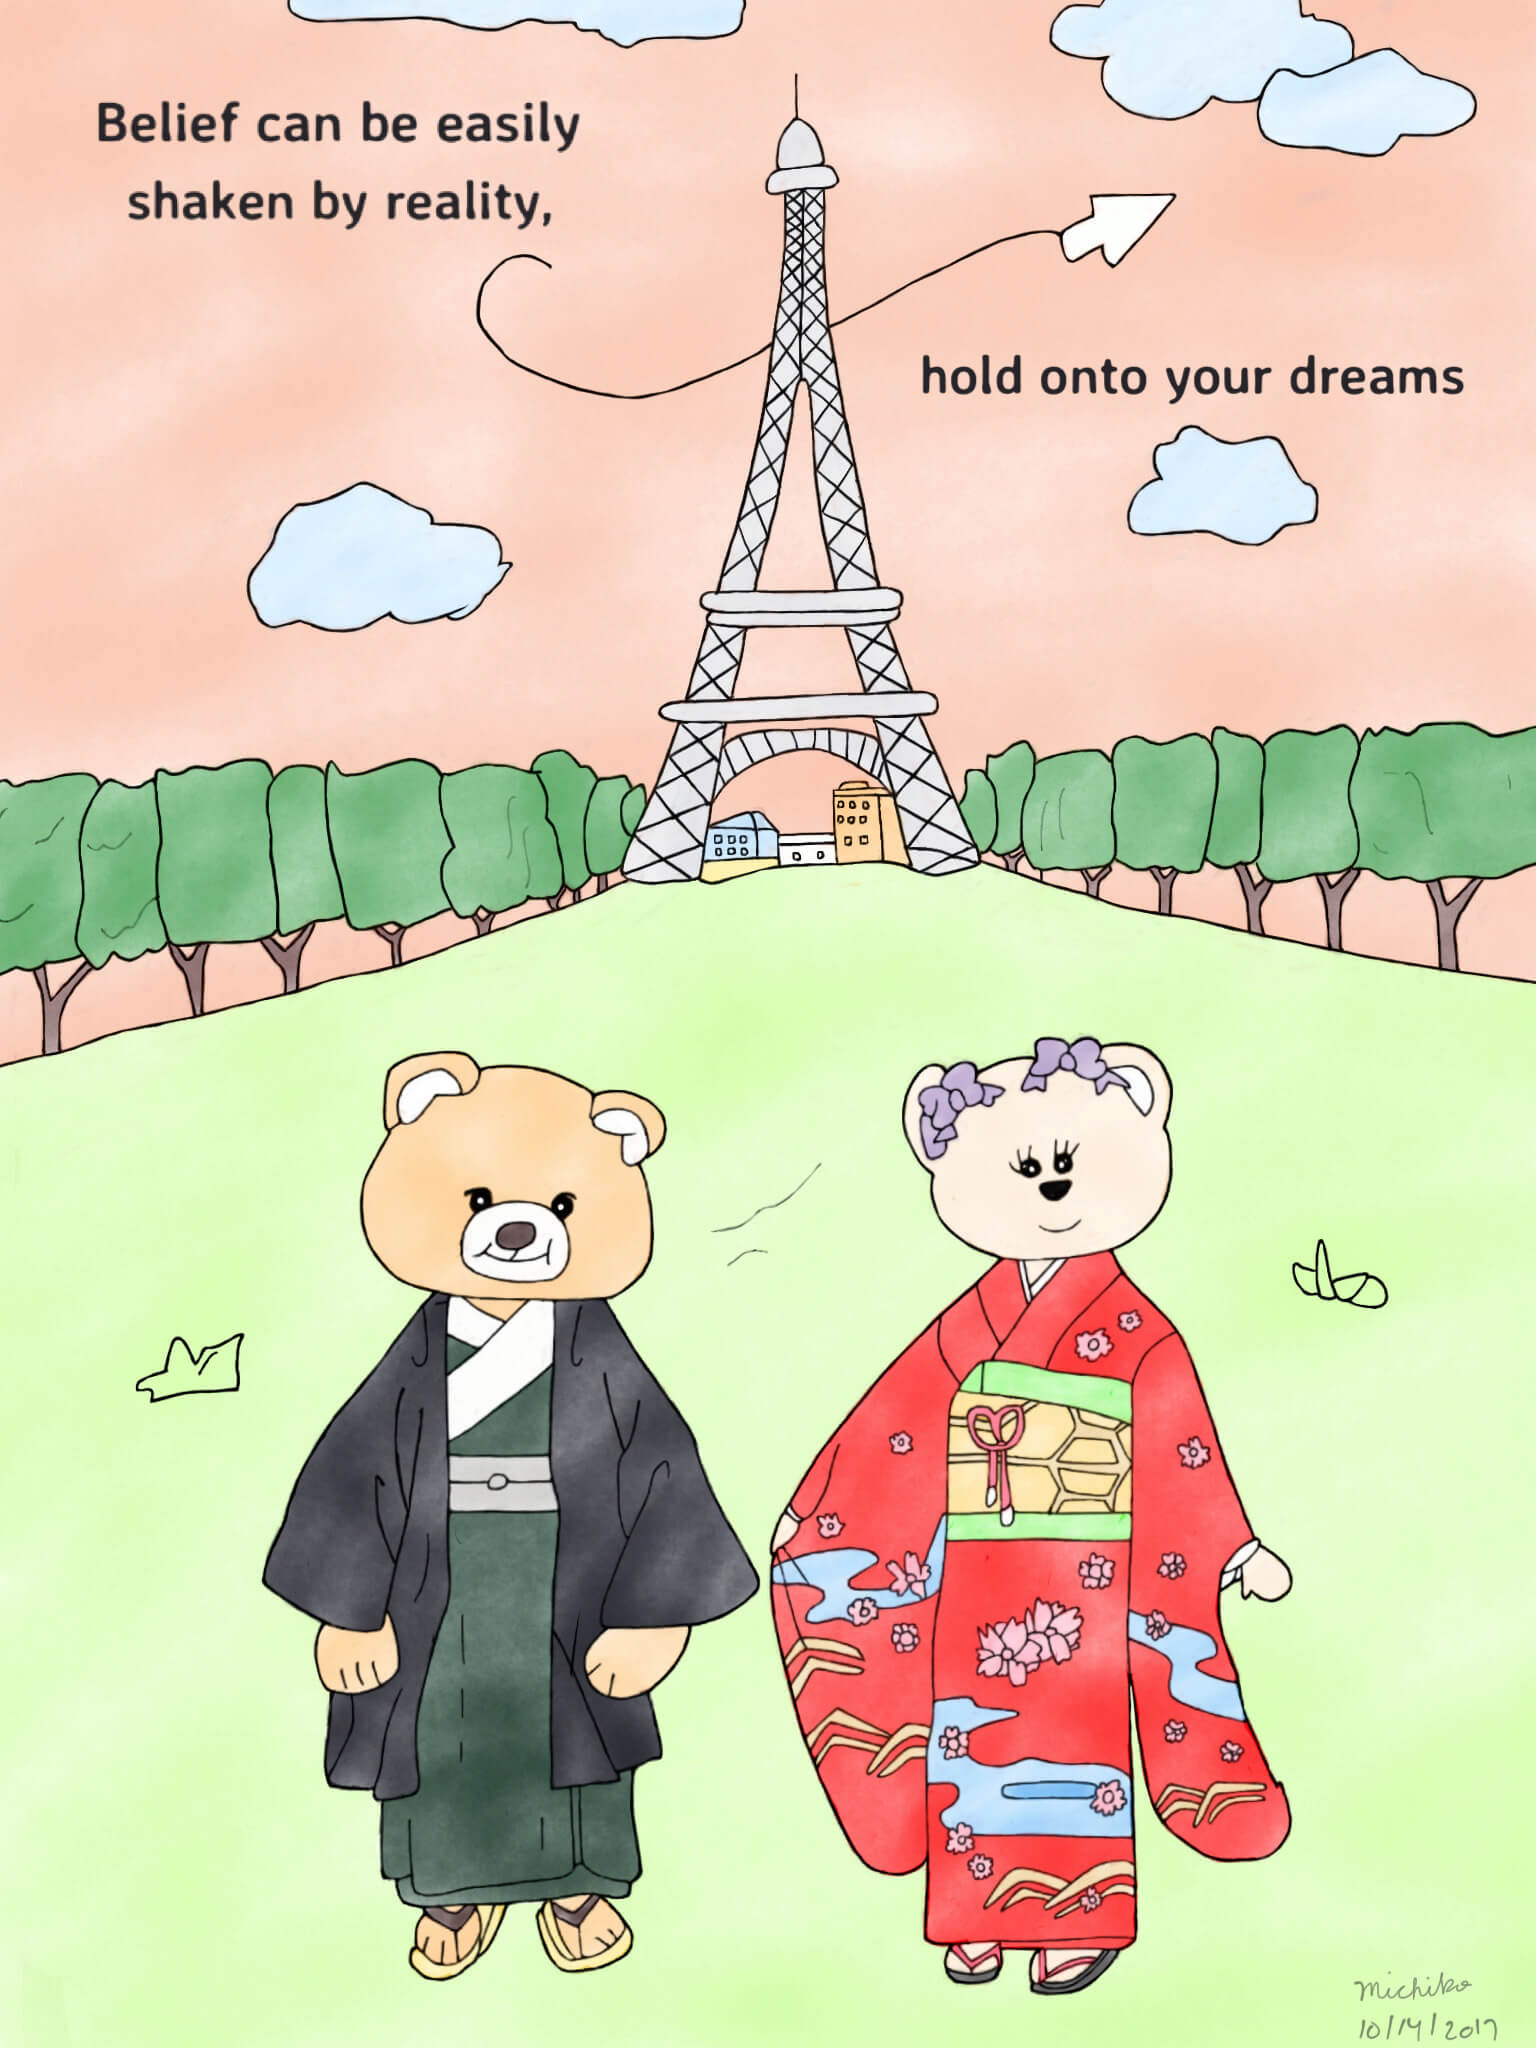 Hold onto your dreams (pink)